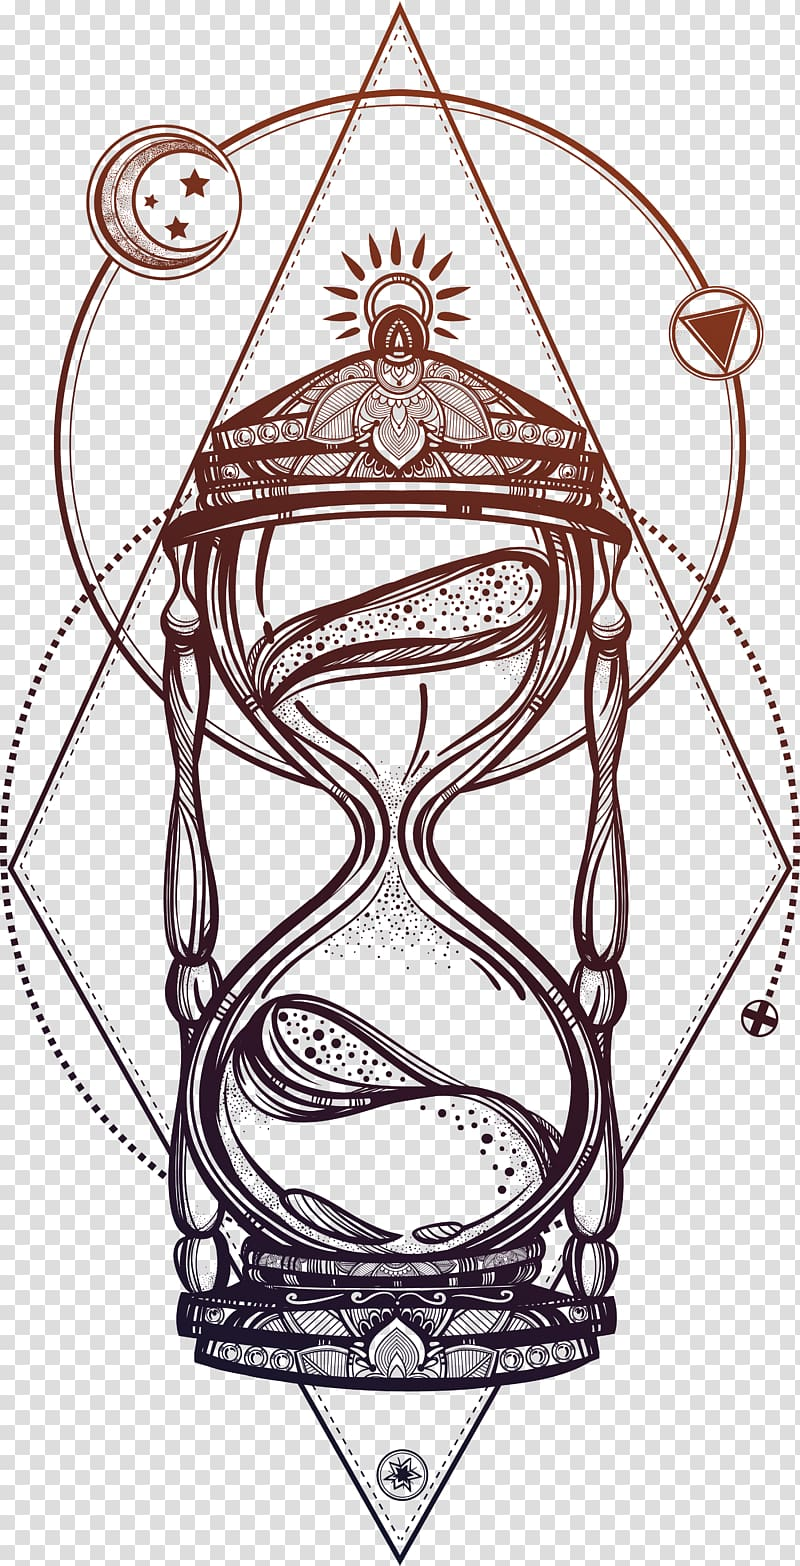 medium resolution of black and brown hour glass illustration drawing hourglass beautiful hand painted hourglass transparent background png clipart